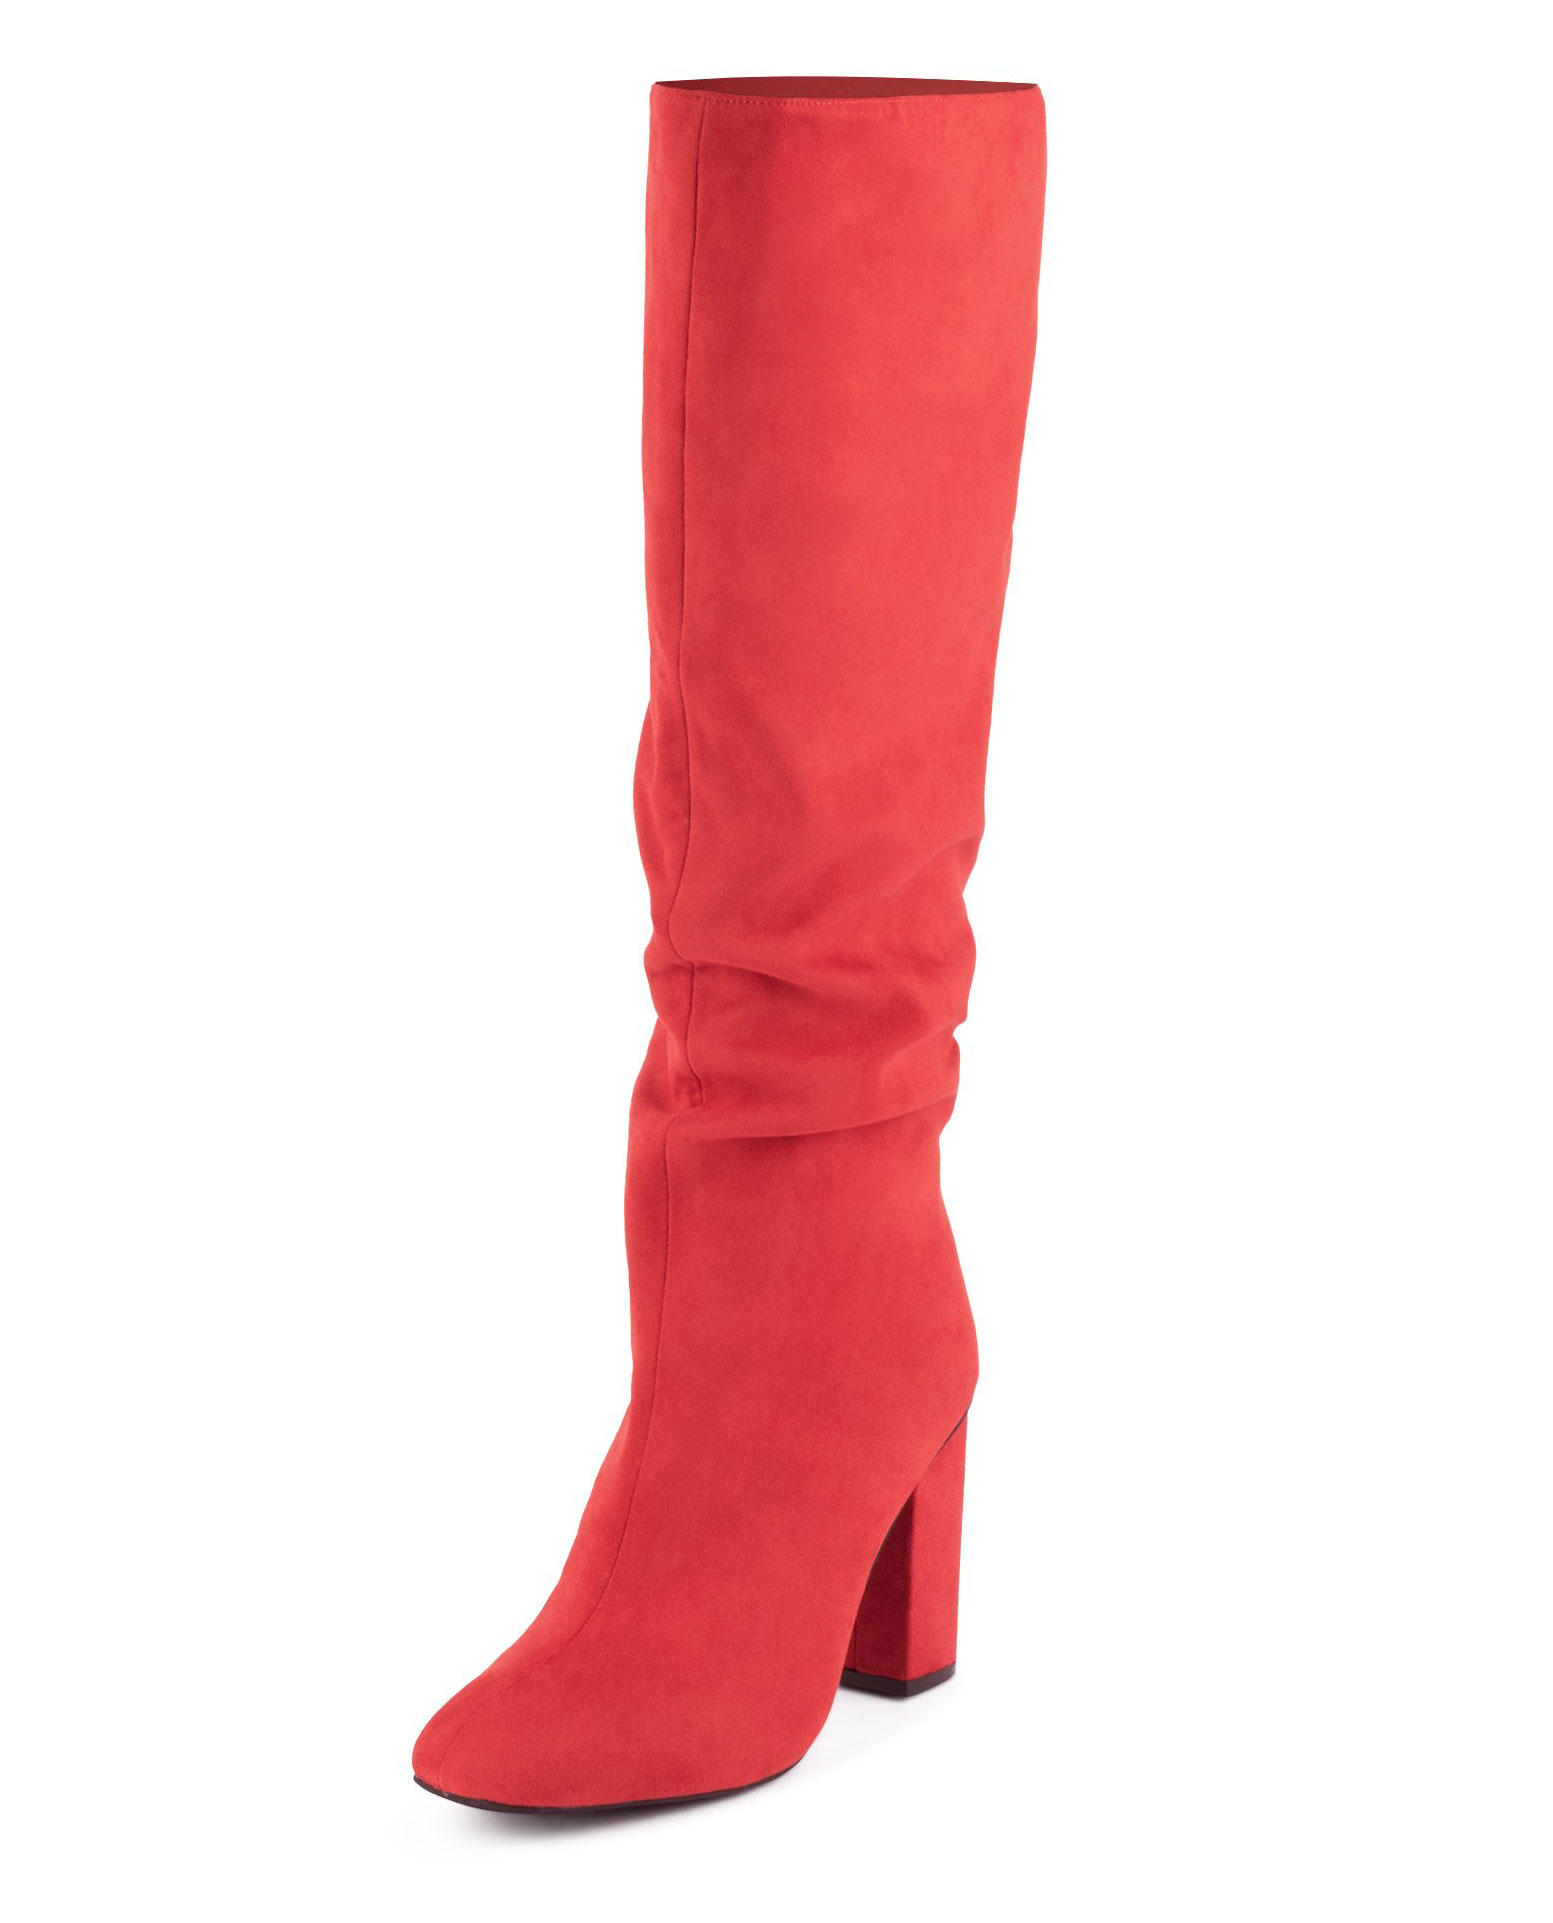 Jeffrey Campbell Red Boot     $190